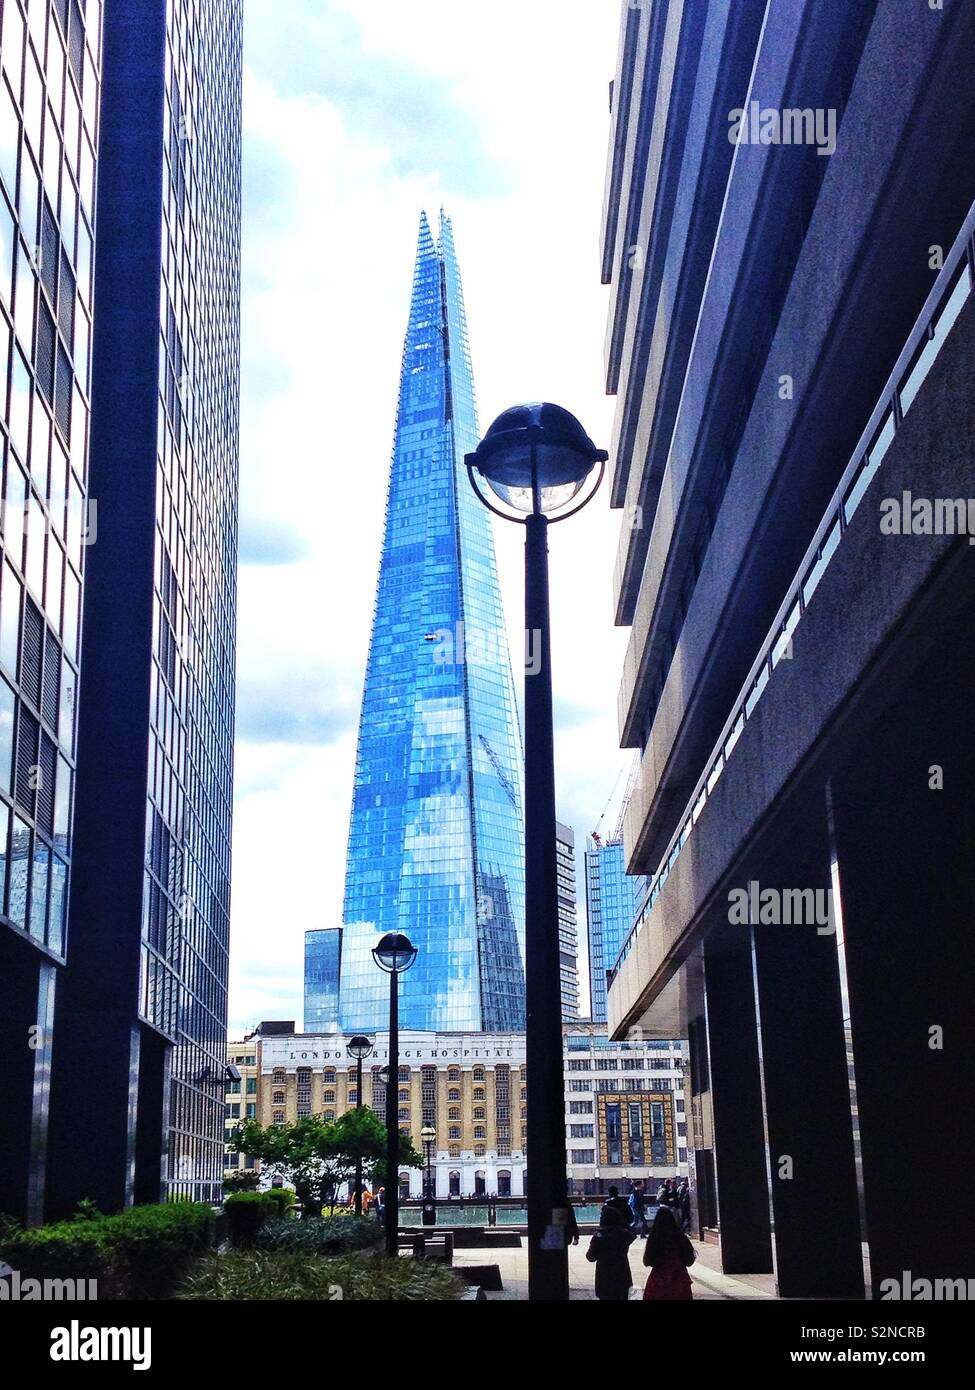 A view of the glass Shard building viewed from a narrow side street on the north bank of the River Thames in London, England. Stock Photo